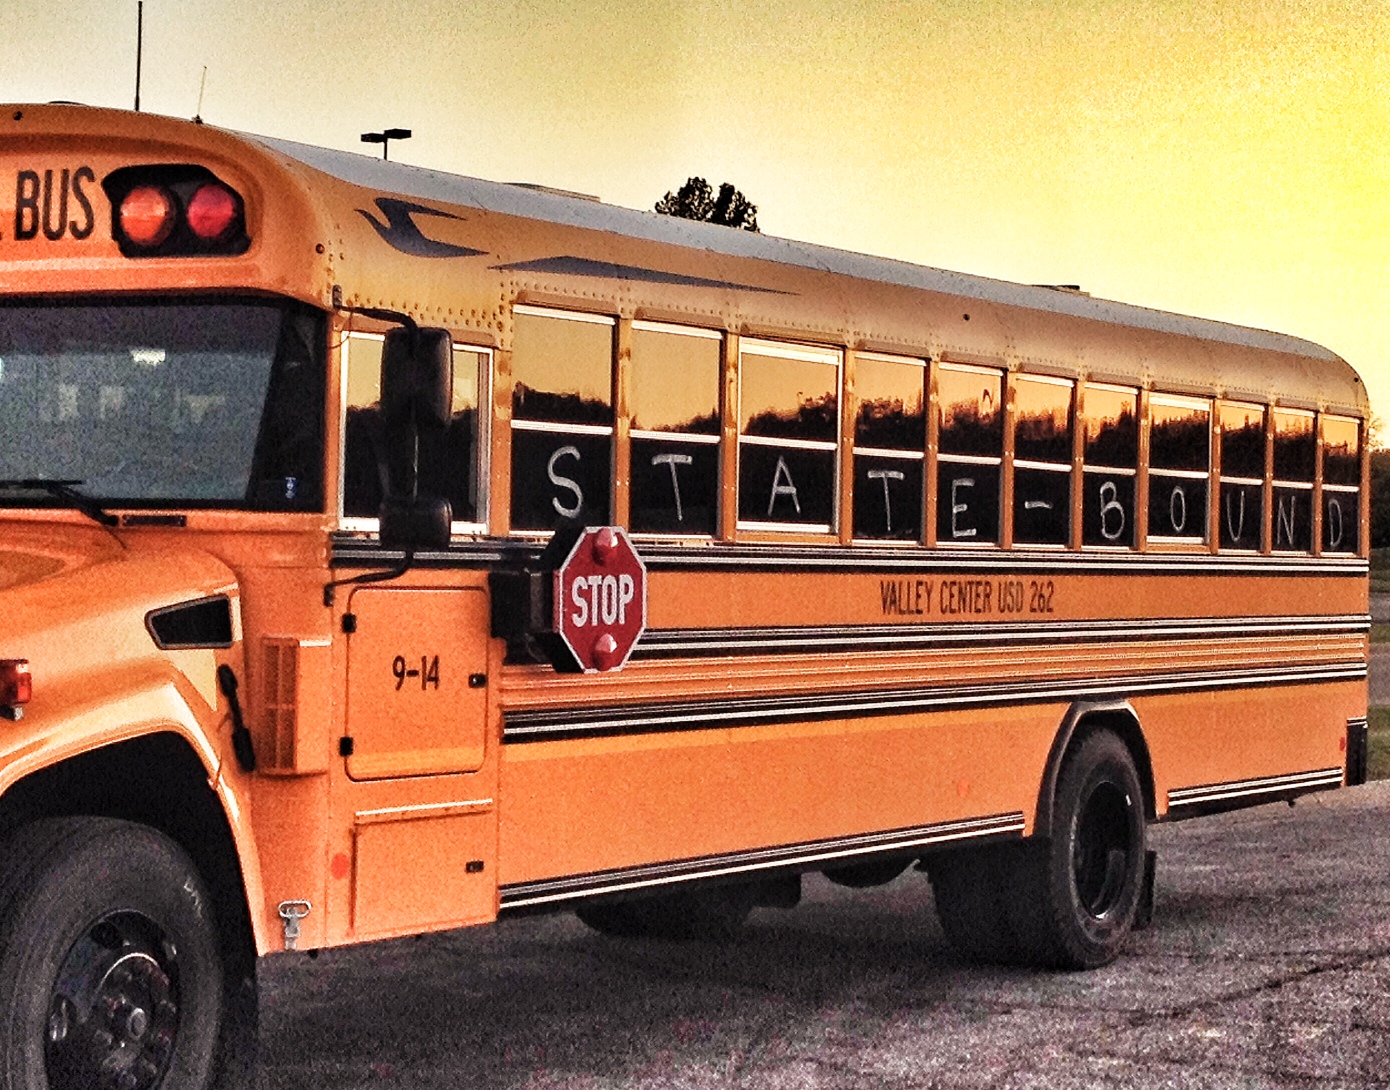 Kansas school bus (Photo by J. Schafer)